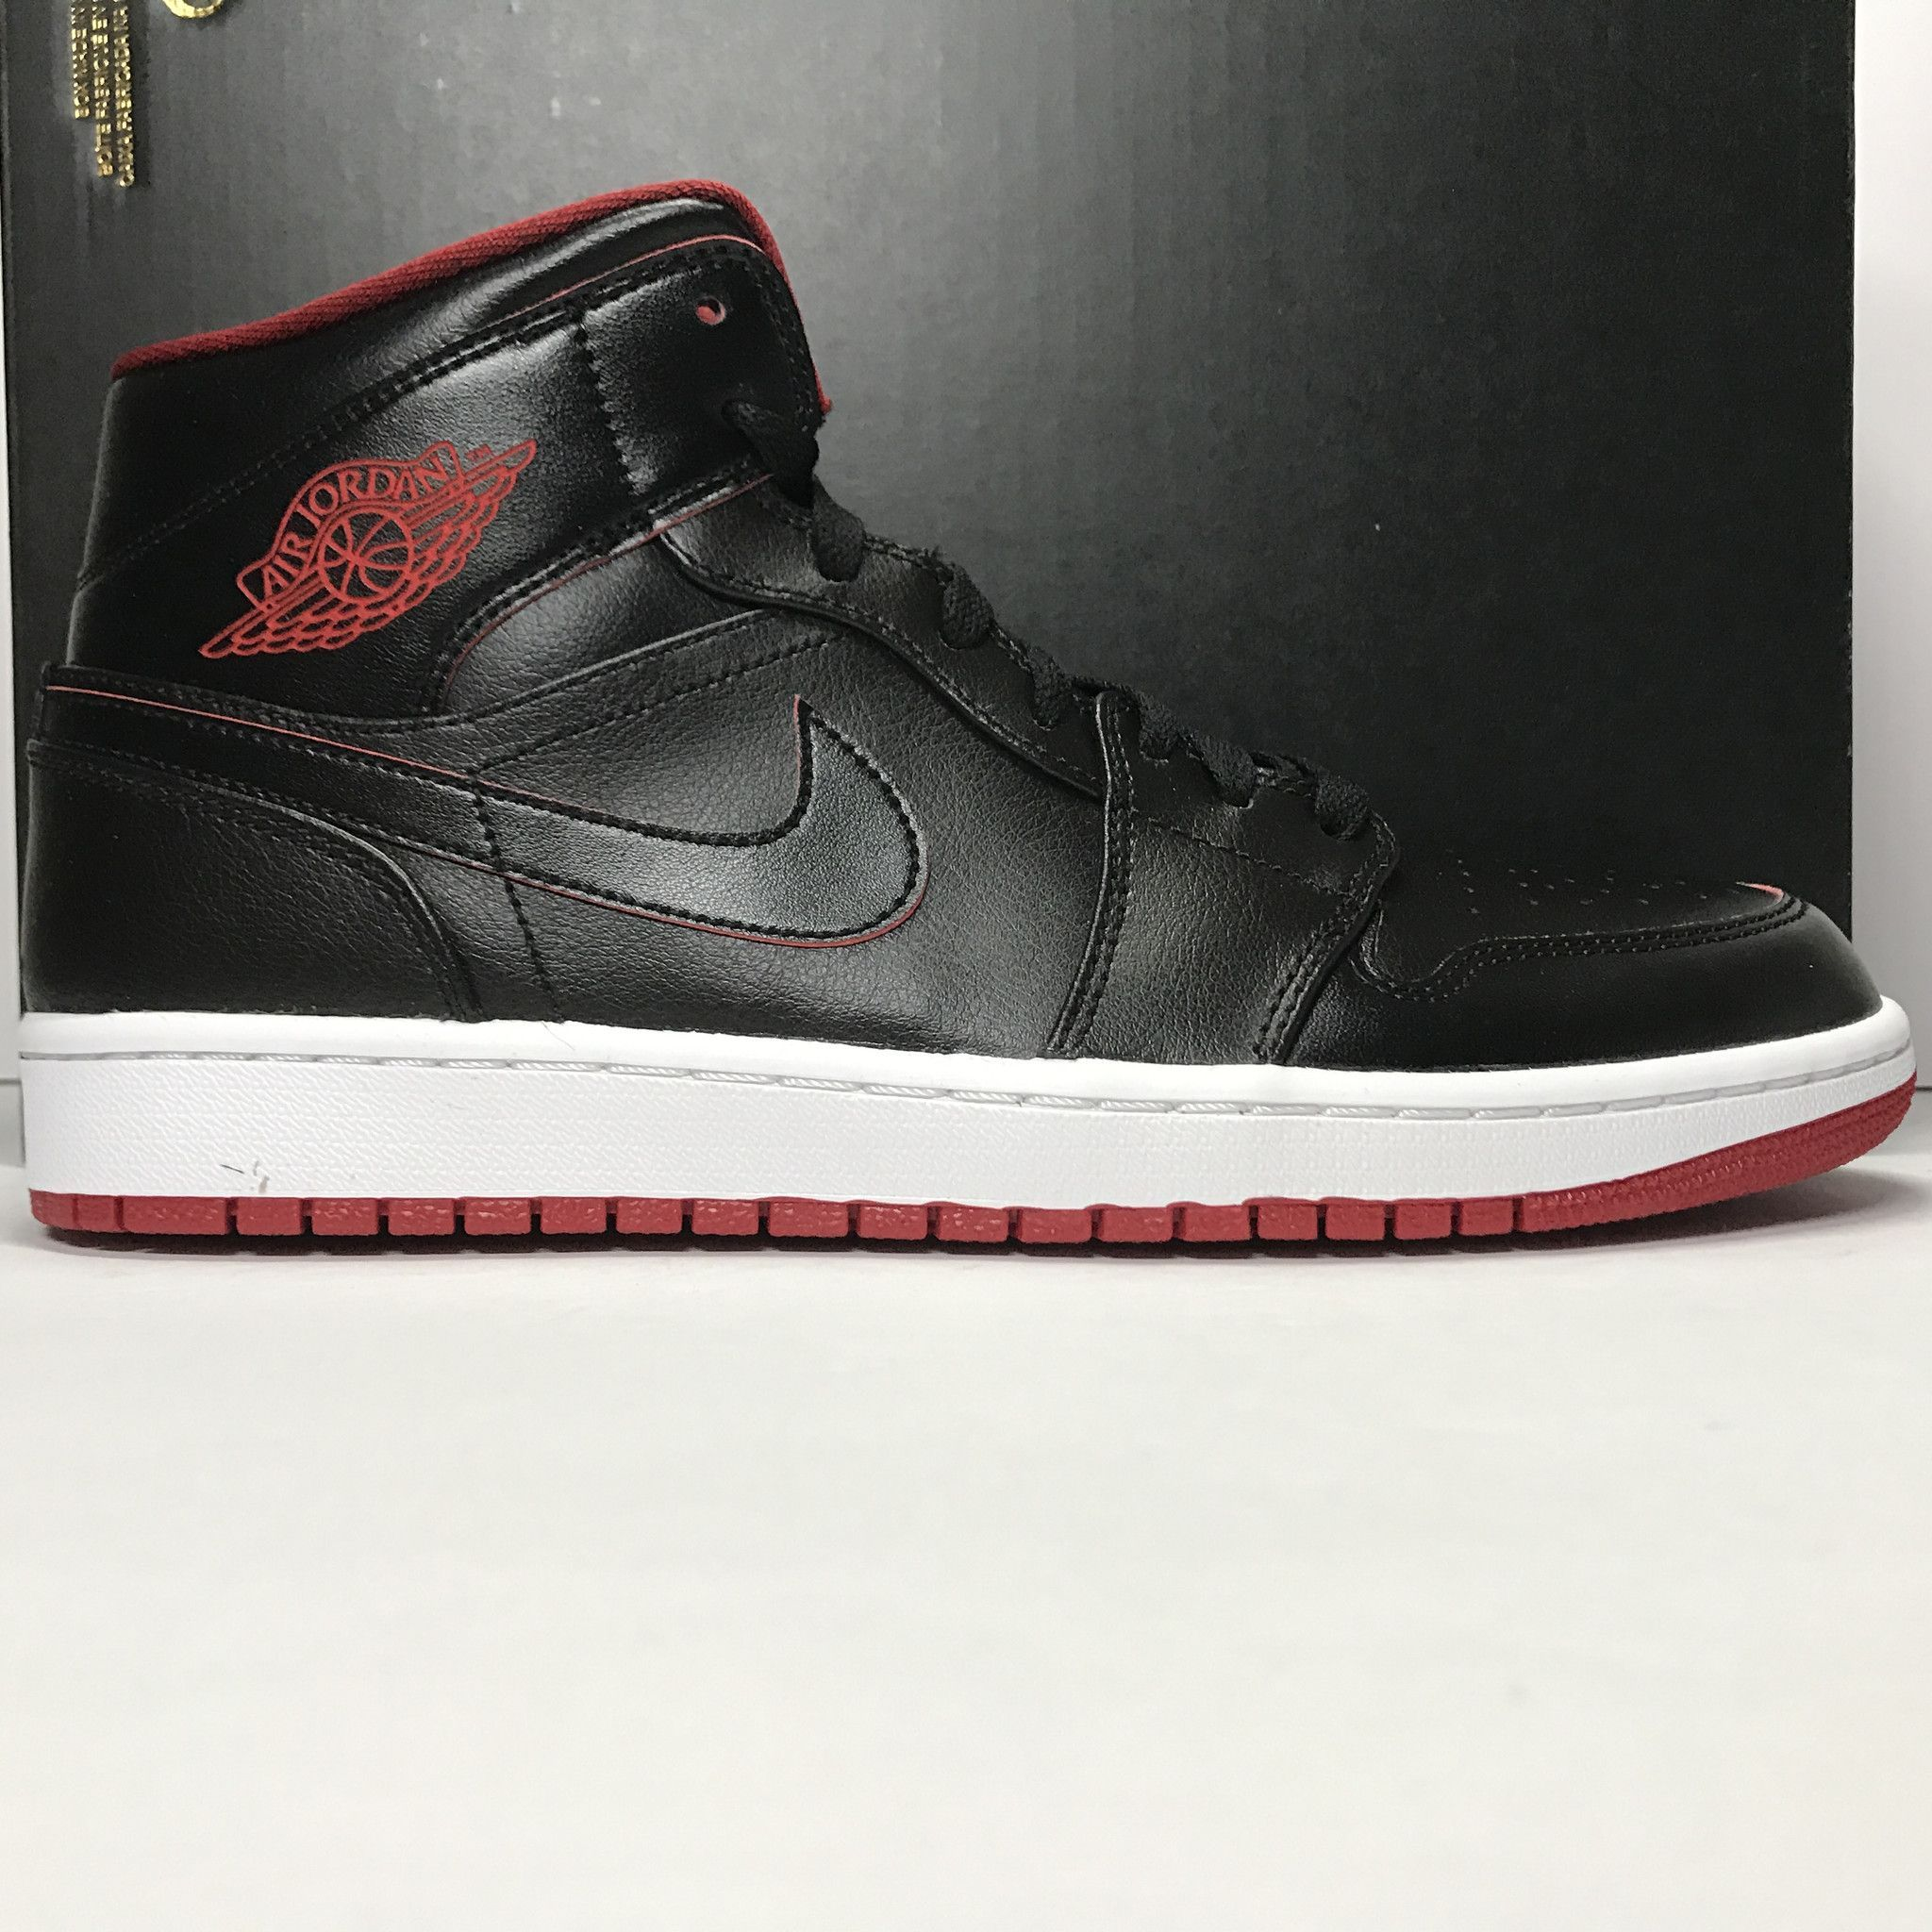 DS Nike Air Jordan 1 I Mid Lance Mountain Black/Red Size 8.5/Size